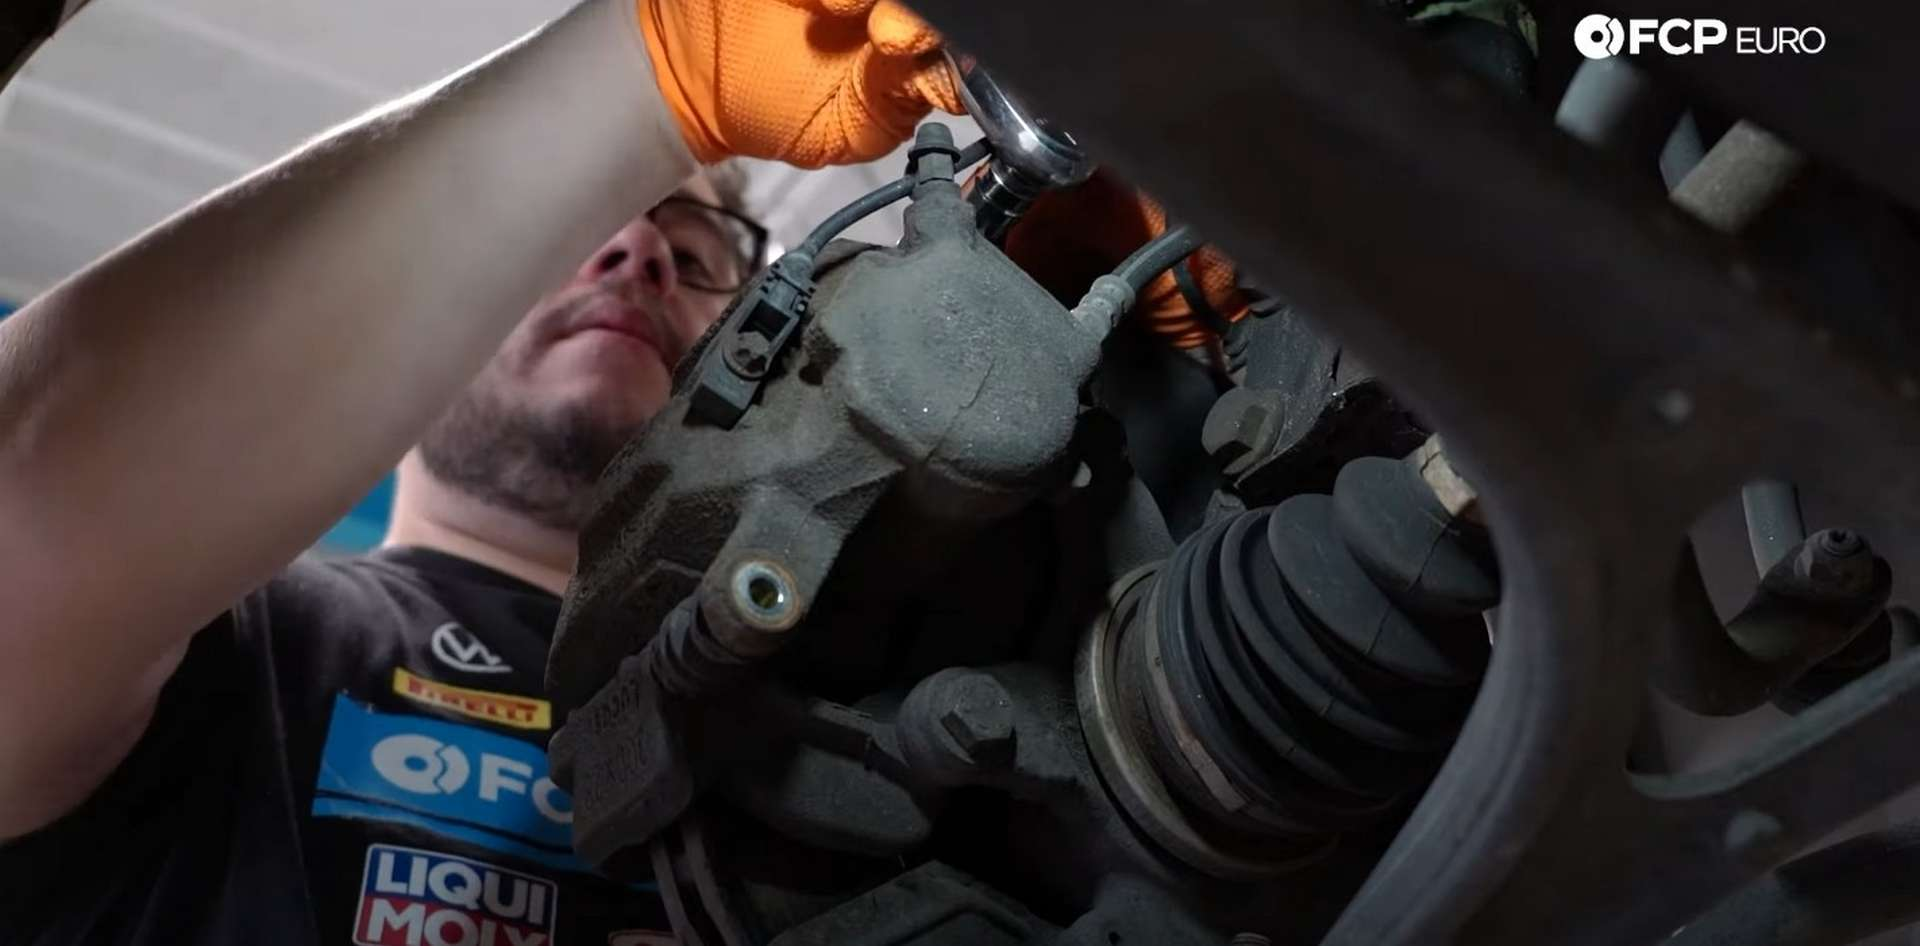 DIY Mercedes W203 Front Brake Service removing the caliper's guide pins